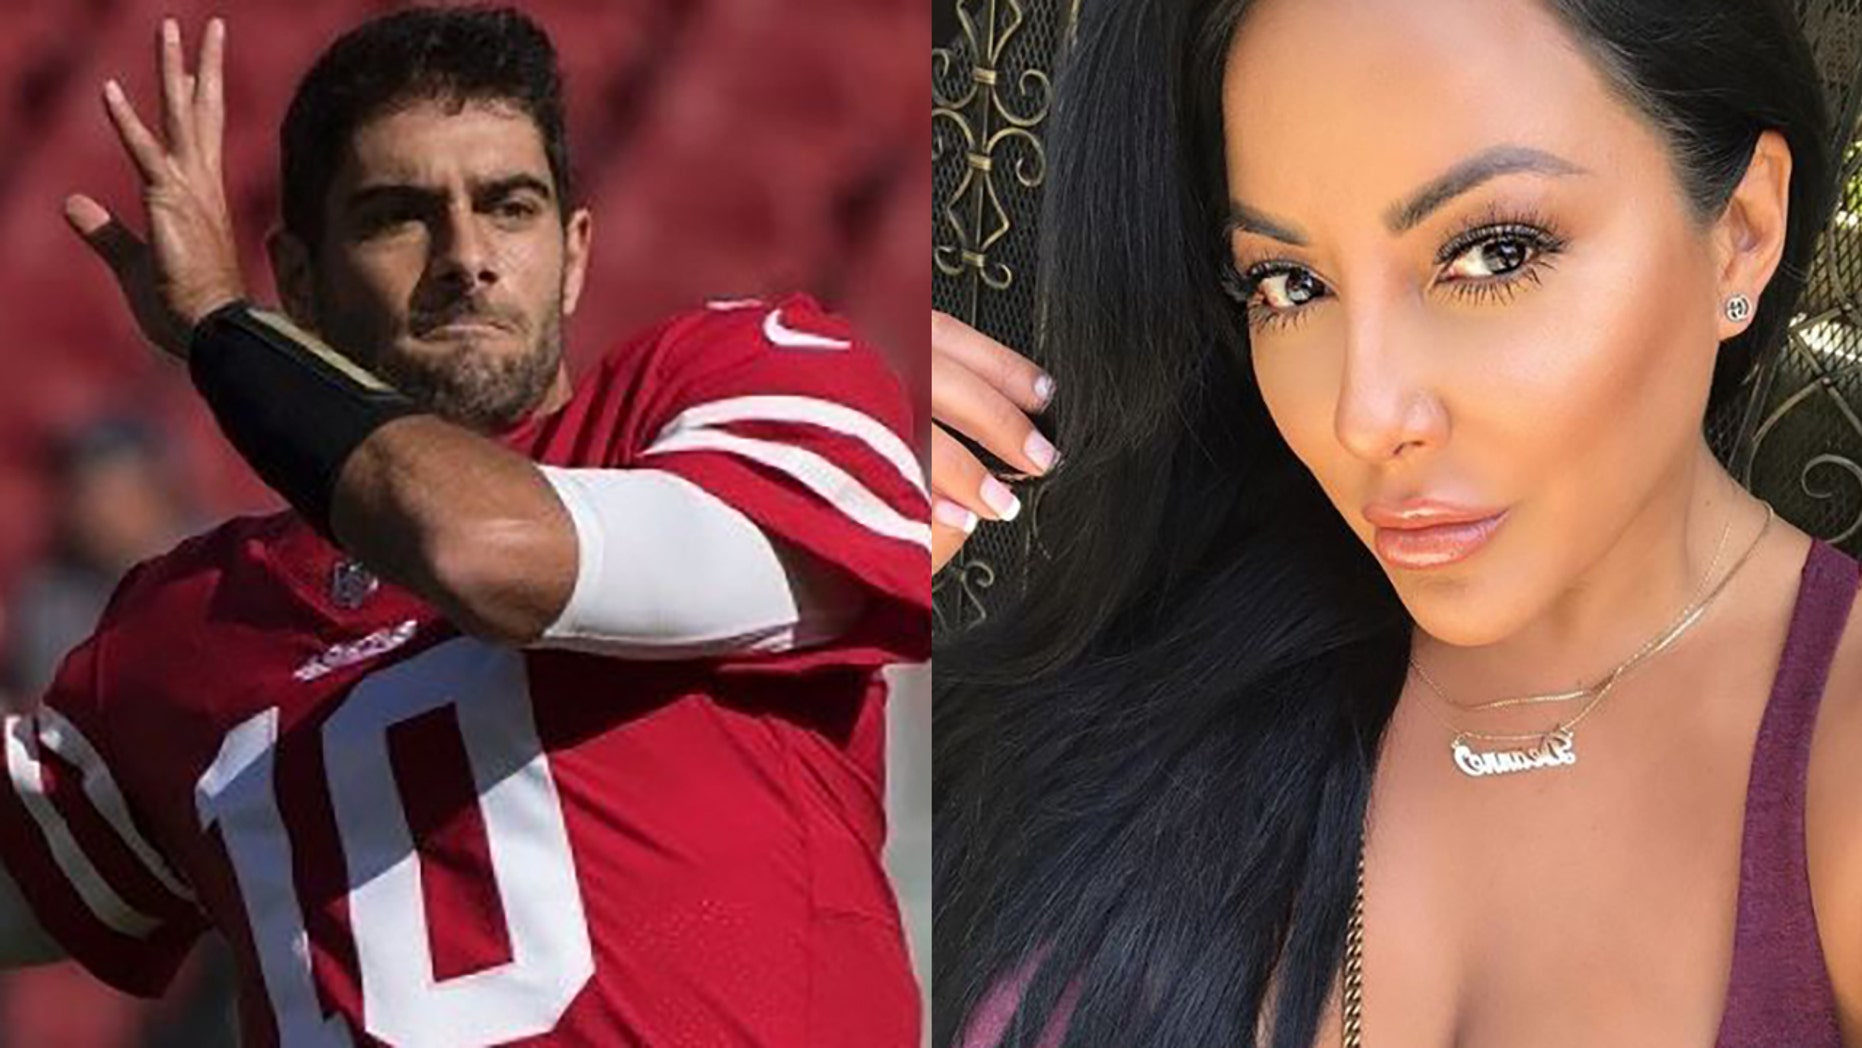 Jimmy Garoppolo reportedly went on a date with porn star Kiara Mia.